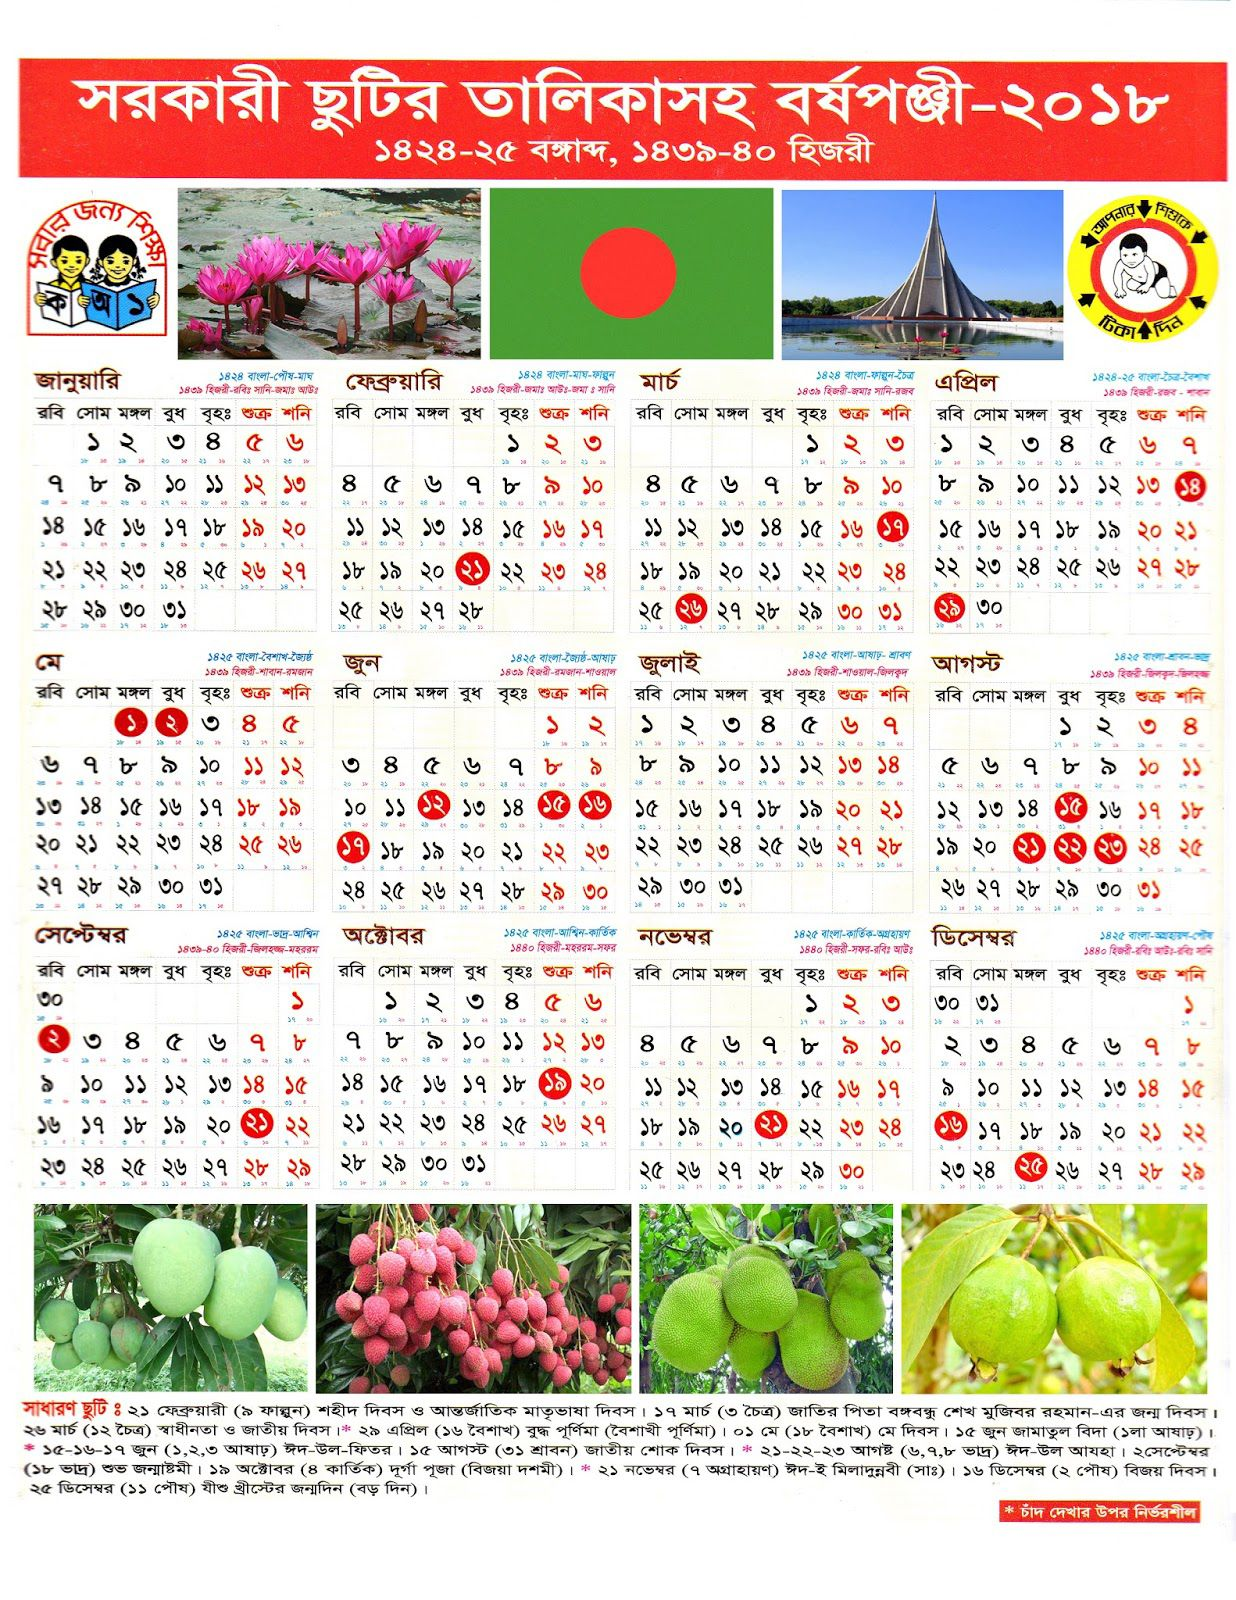 Bangladesh Government Official Calendar 2018, Government Holiday